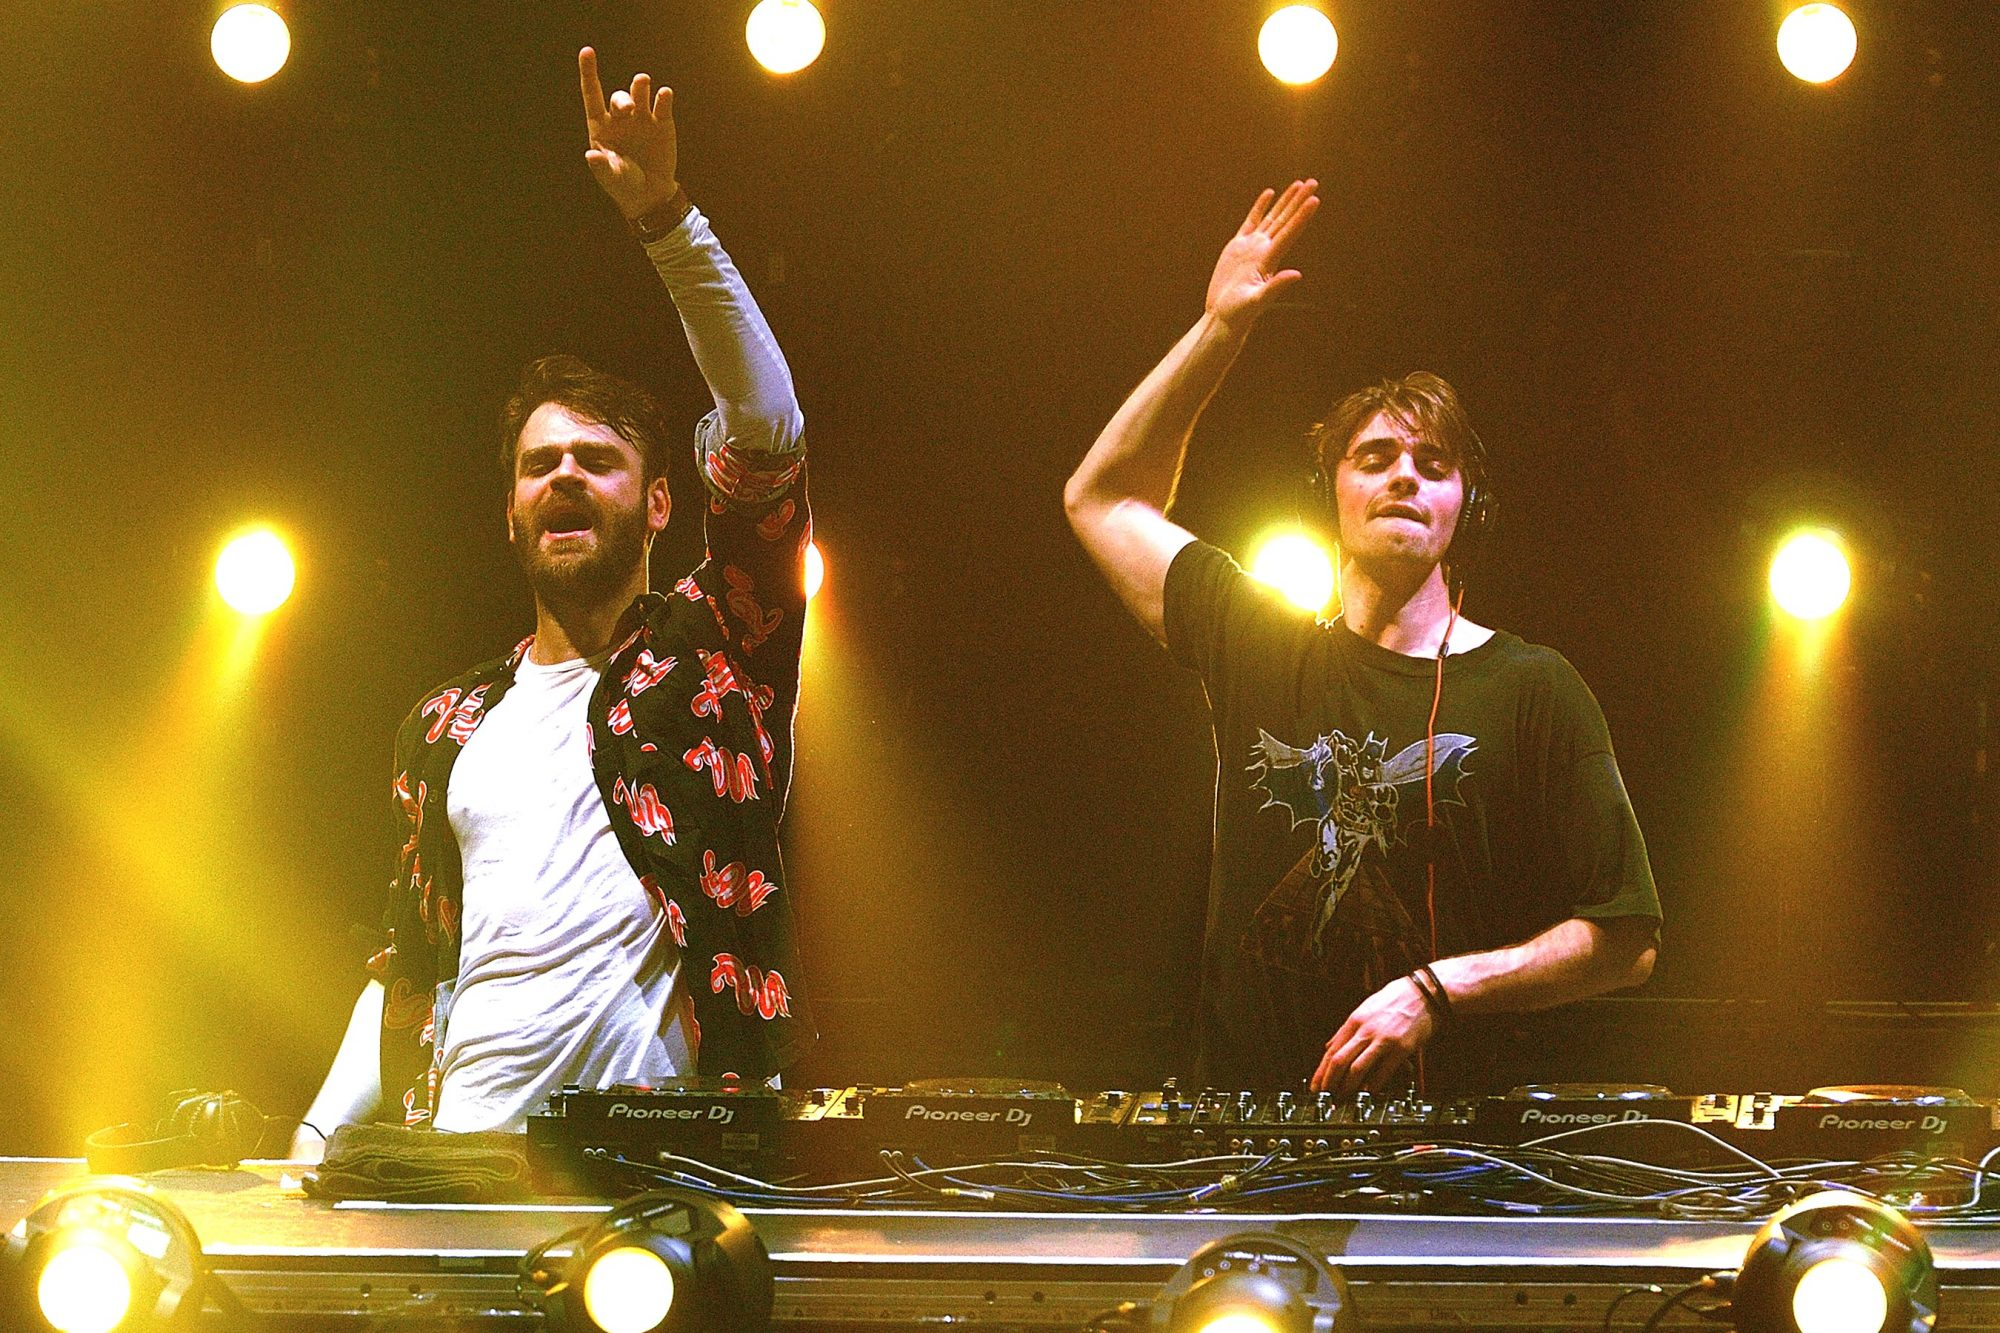 The Chainsmokers Perform At The Roundhouse